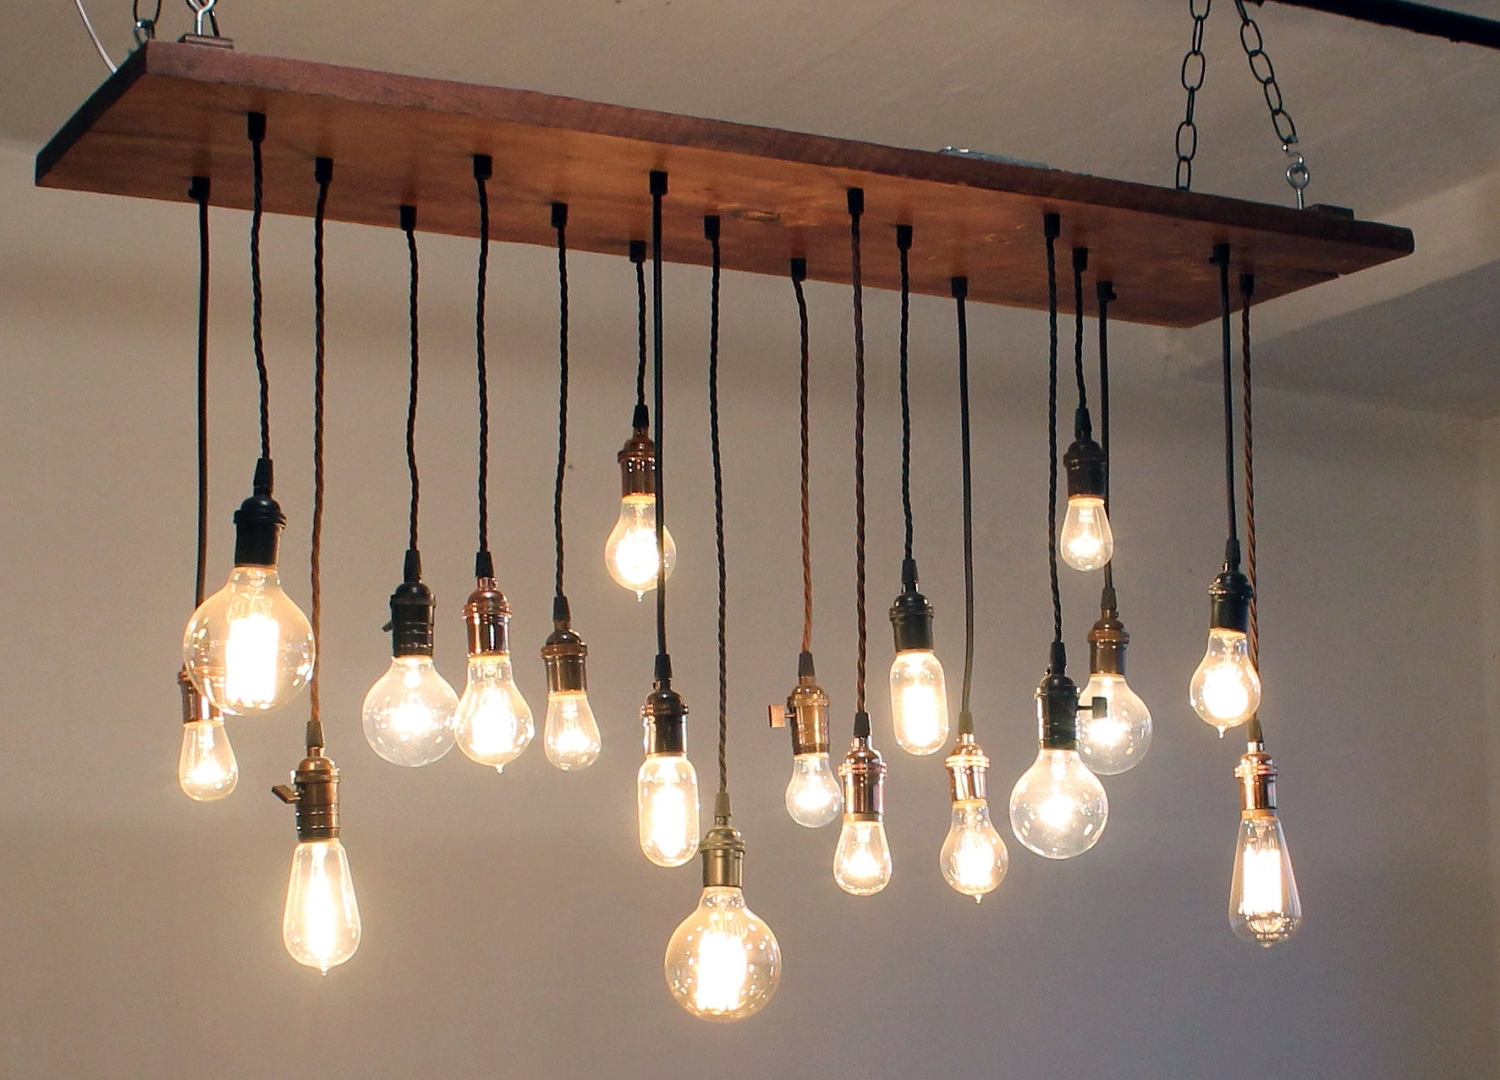 Famous Light Fitting Chandeliers Intended For Oversized Historic Light Bulbs – The Light House Gallery (View 7 of 15)